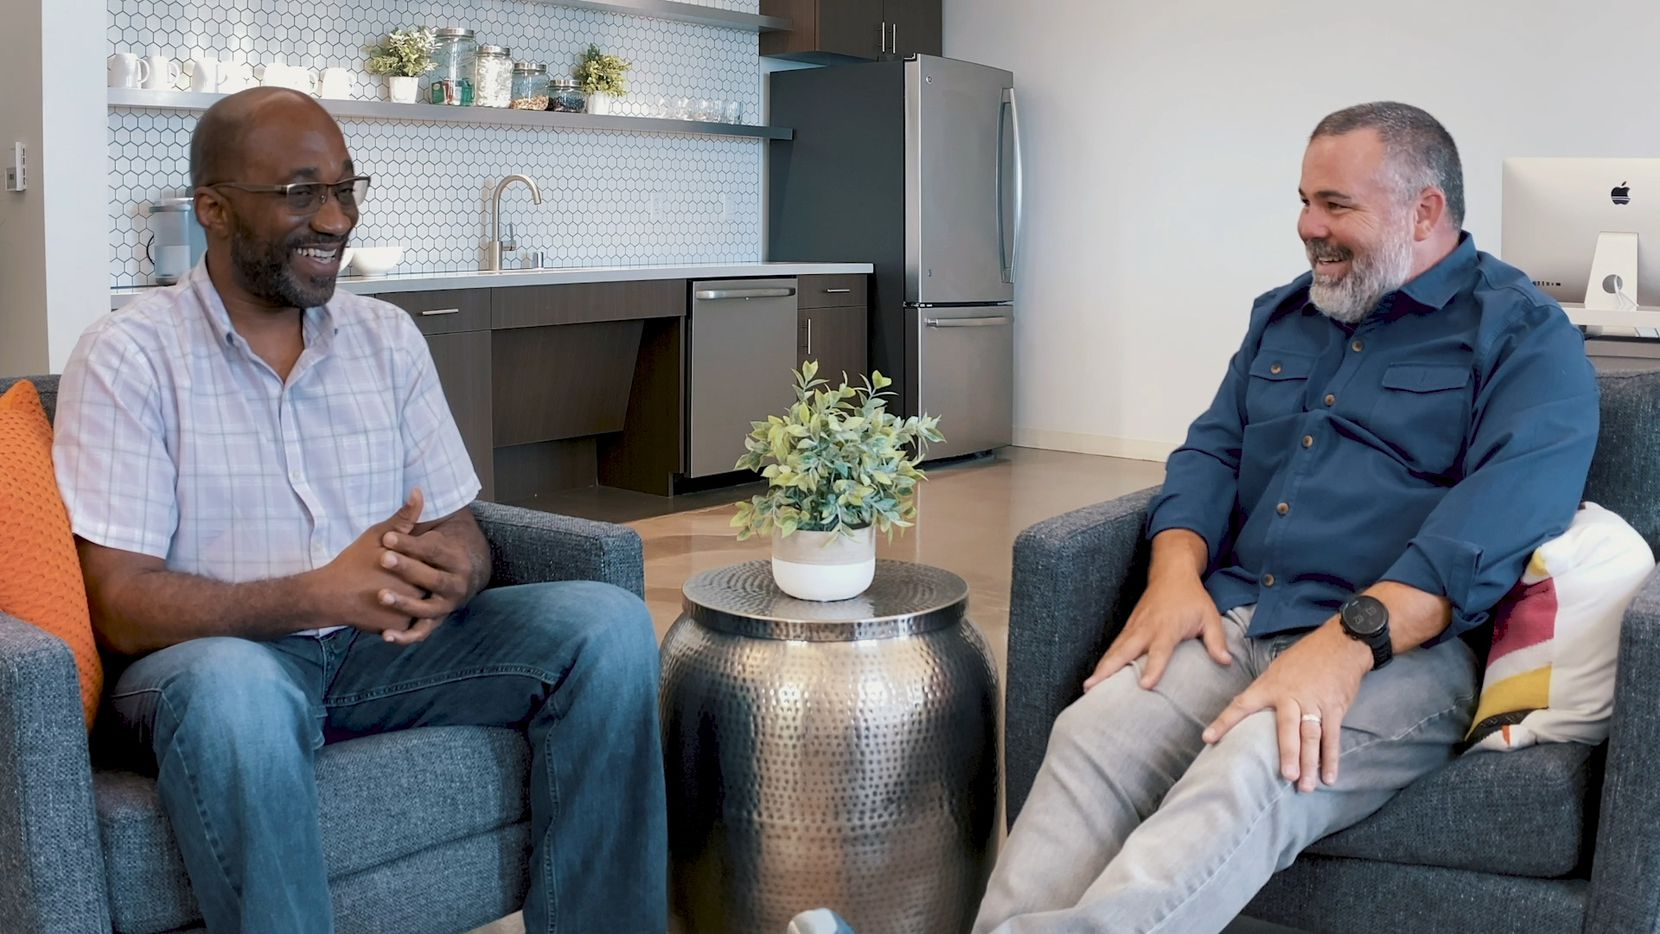 After George Floyd's death and the protests around the country, the president of Gordon Highlander, Greg Gordon (right), posted a Facebook video discussion about Black Lives Matter with a project manager for the company, Brian Thompson.